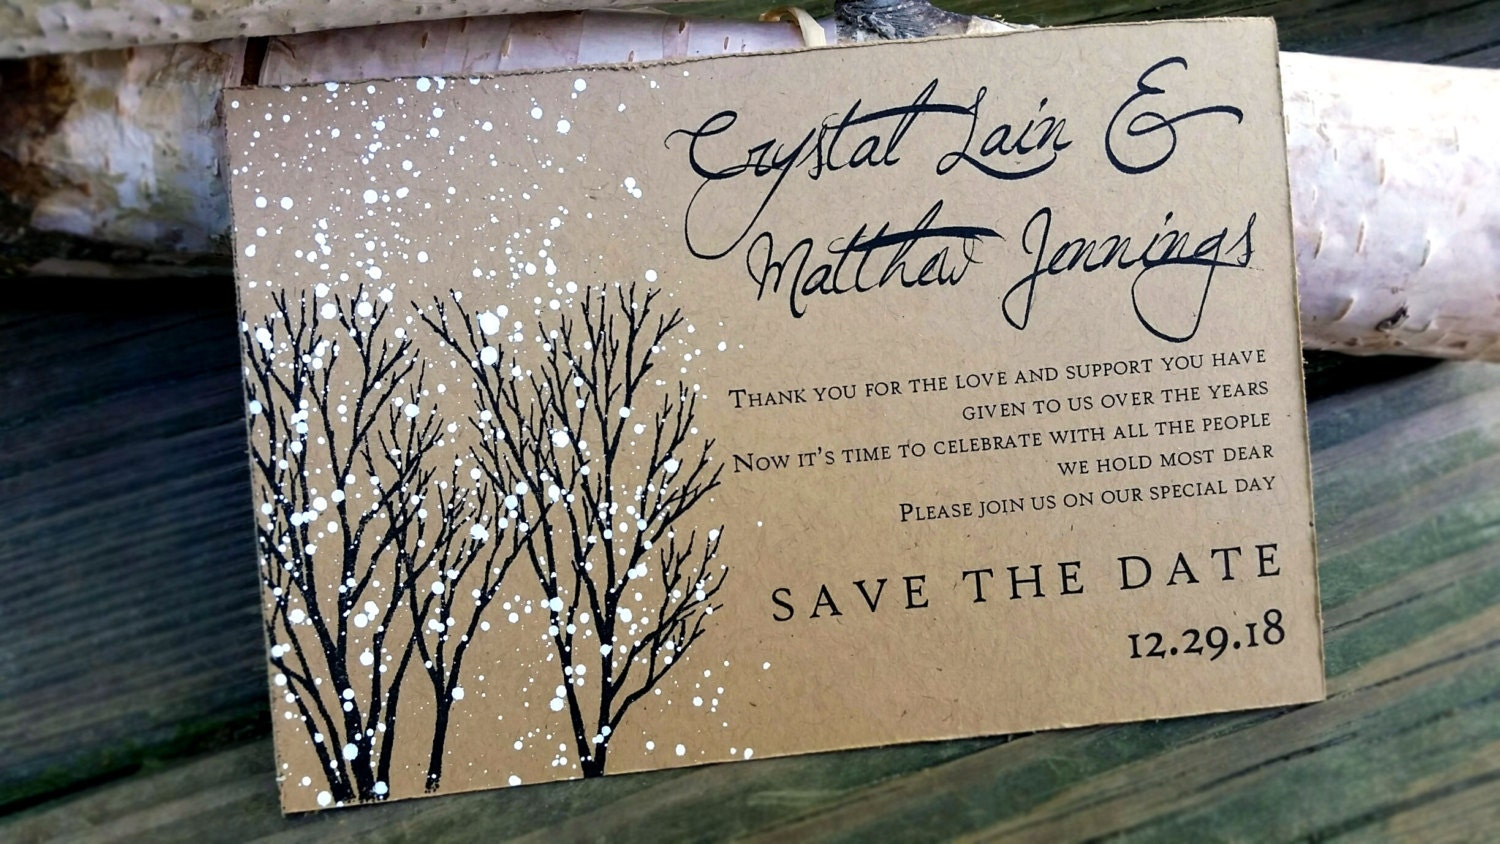 Wedding Save The Date Postcards: Save The Date Postcards Winter Wedding Save The Dates Winter